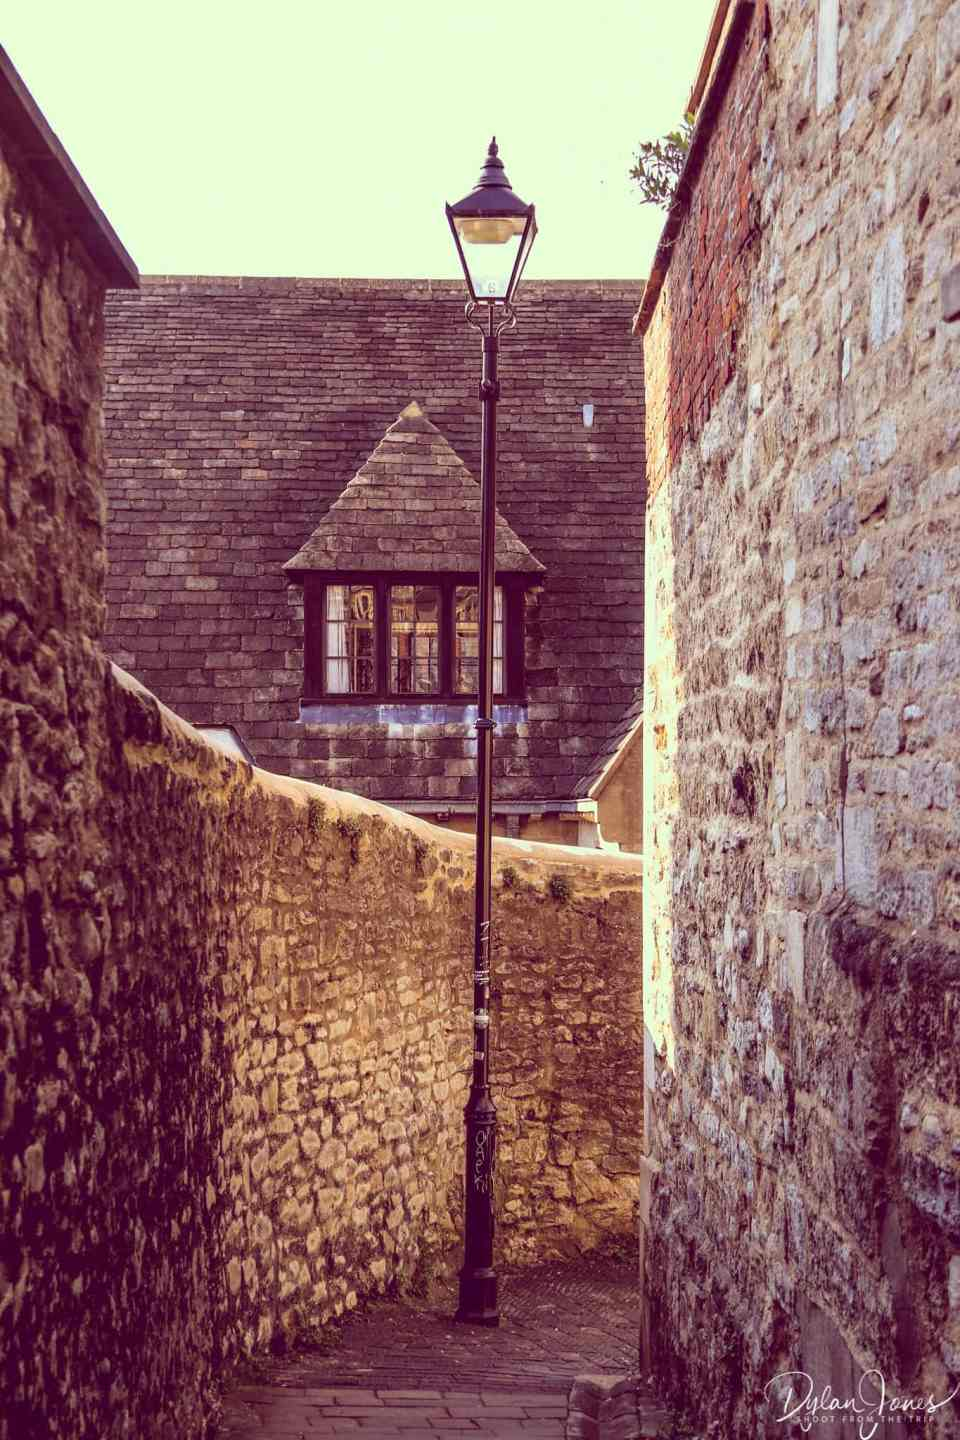 Exploring the alleyways during a weekend in Oxford